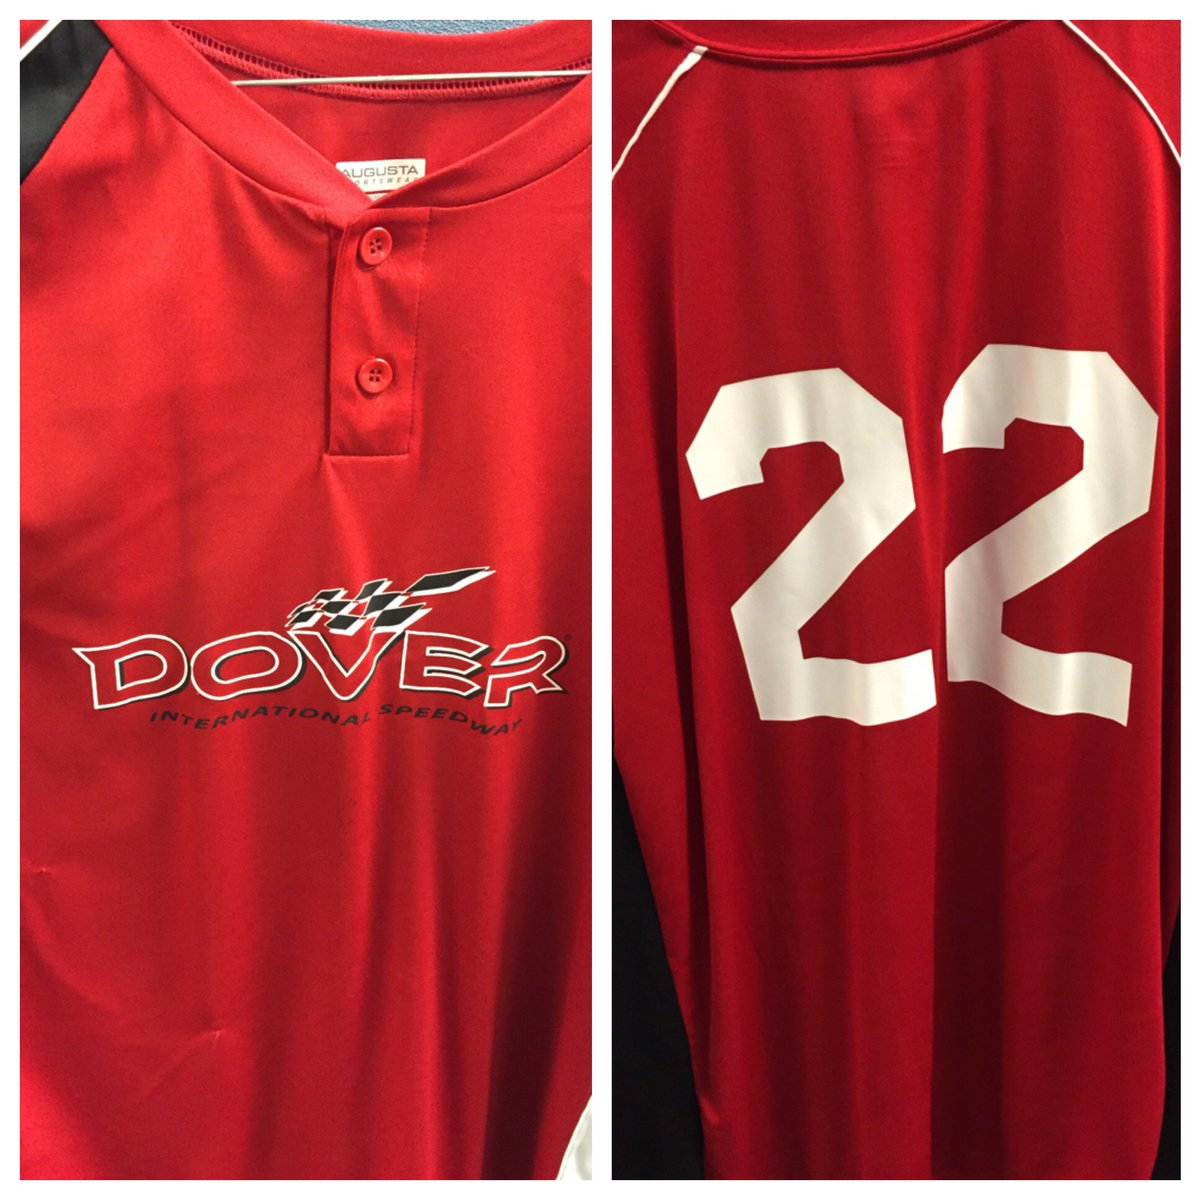 #TBT @joeylogano led #TeamDover to victory on 4/21/15. RT to win this jersey from the #DoverPocono game! (Size 3x) https://t.co/zQxCMdBcIm